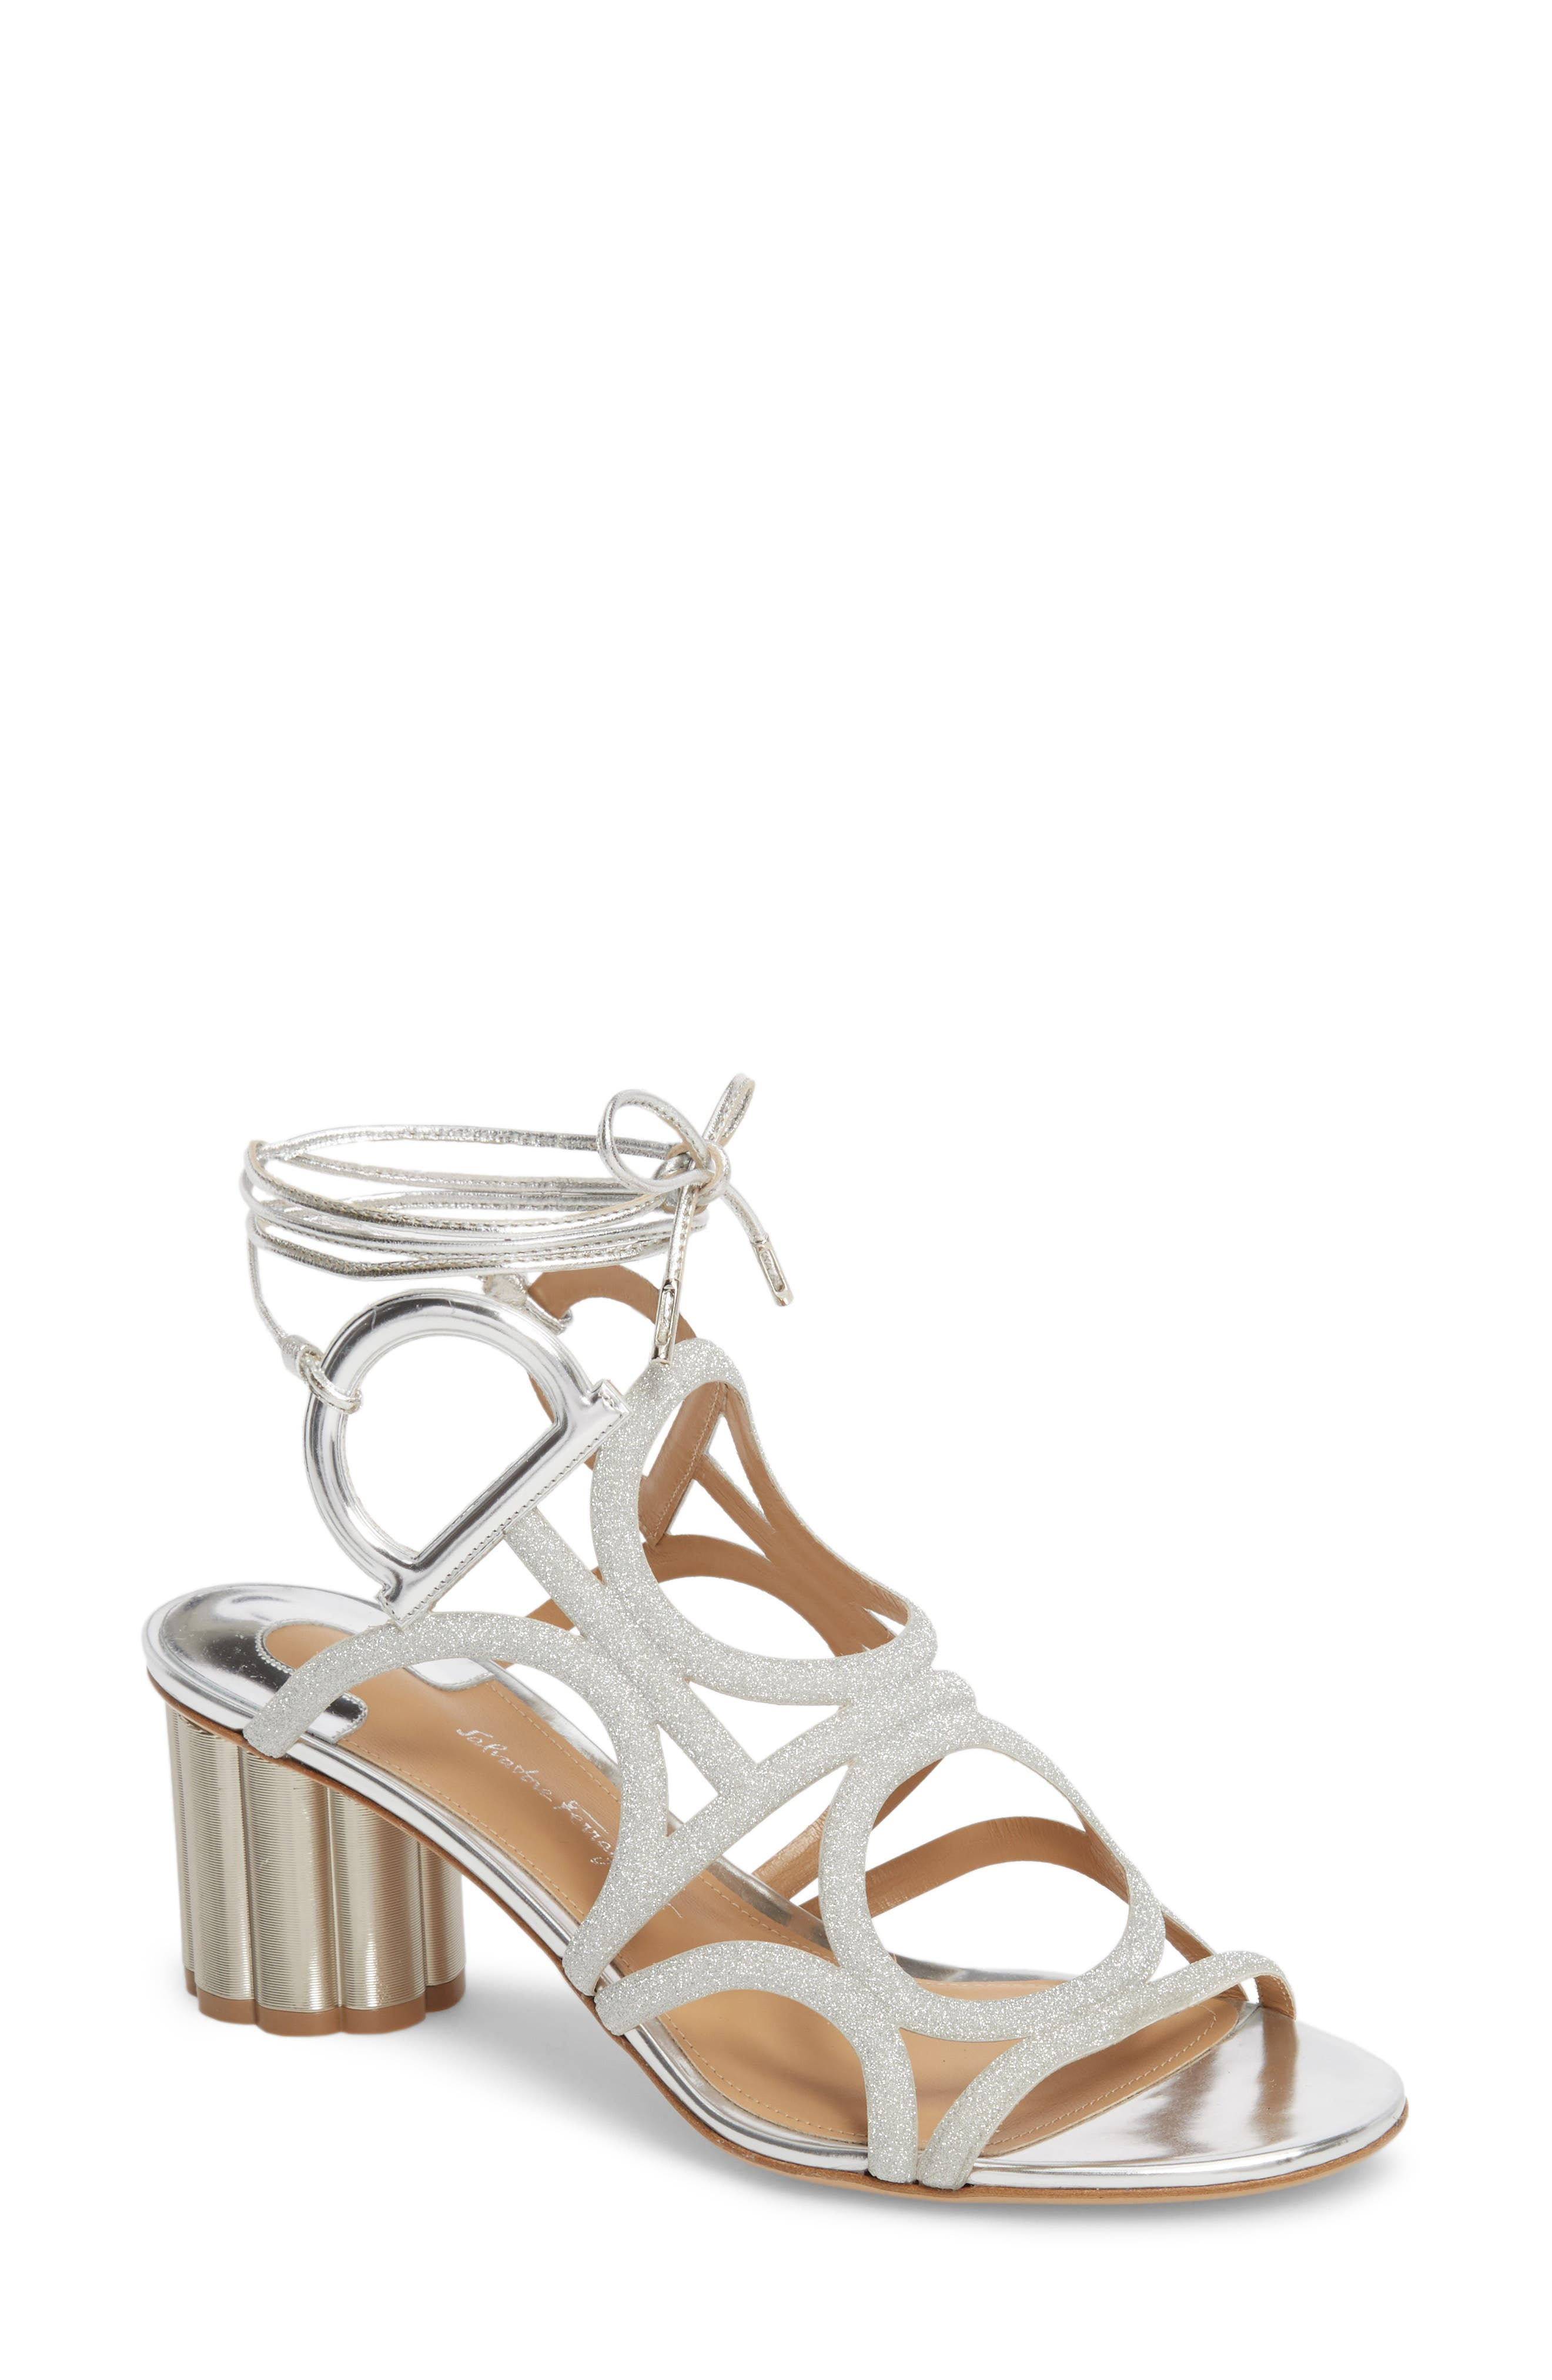 Vinci Lace-Up Block Heel Sandal,                         Main,                         color, SILVER